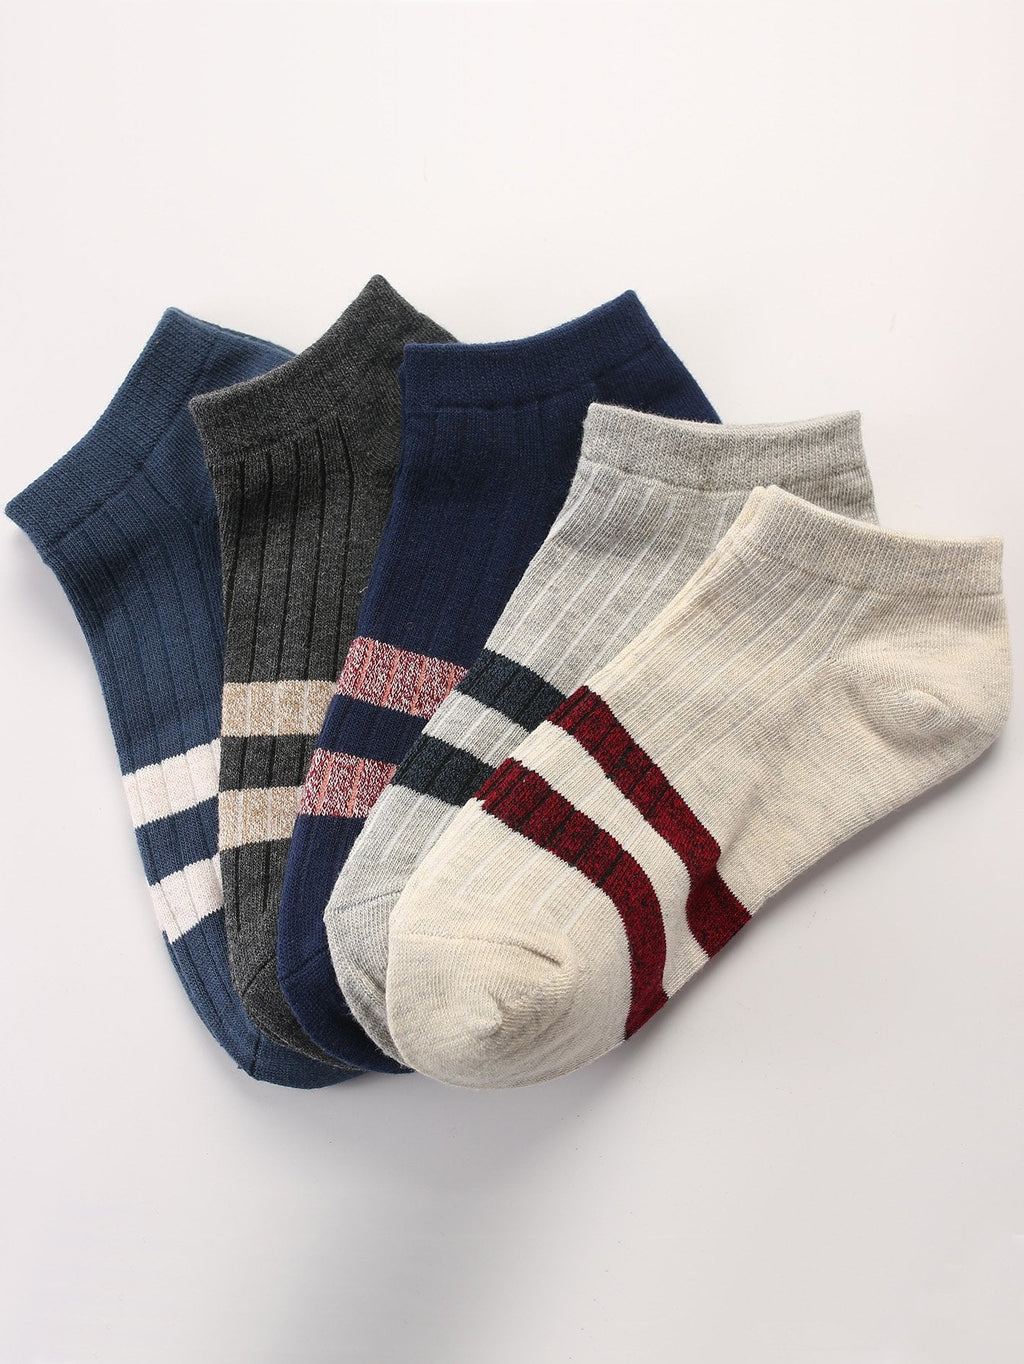 Men's Socks - Striped Socks 5pairs